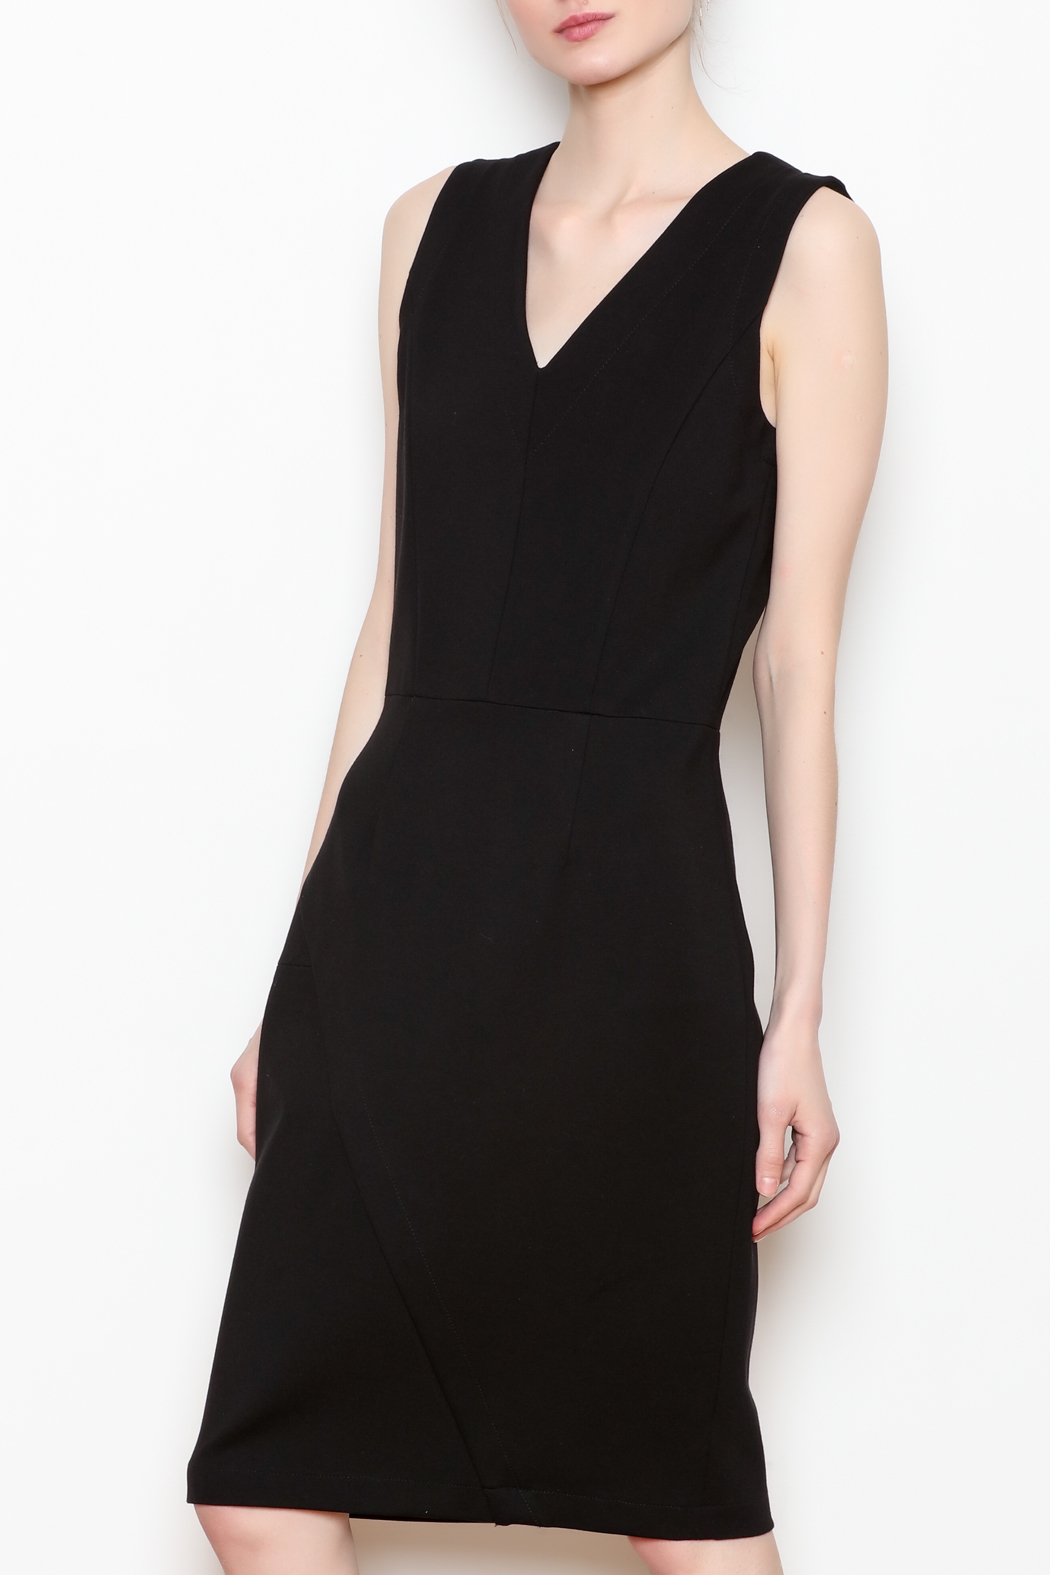 26Line by MLNK Black Sheath Dress - Main Image